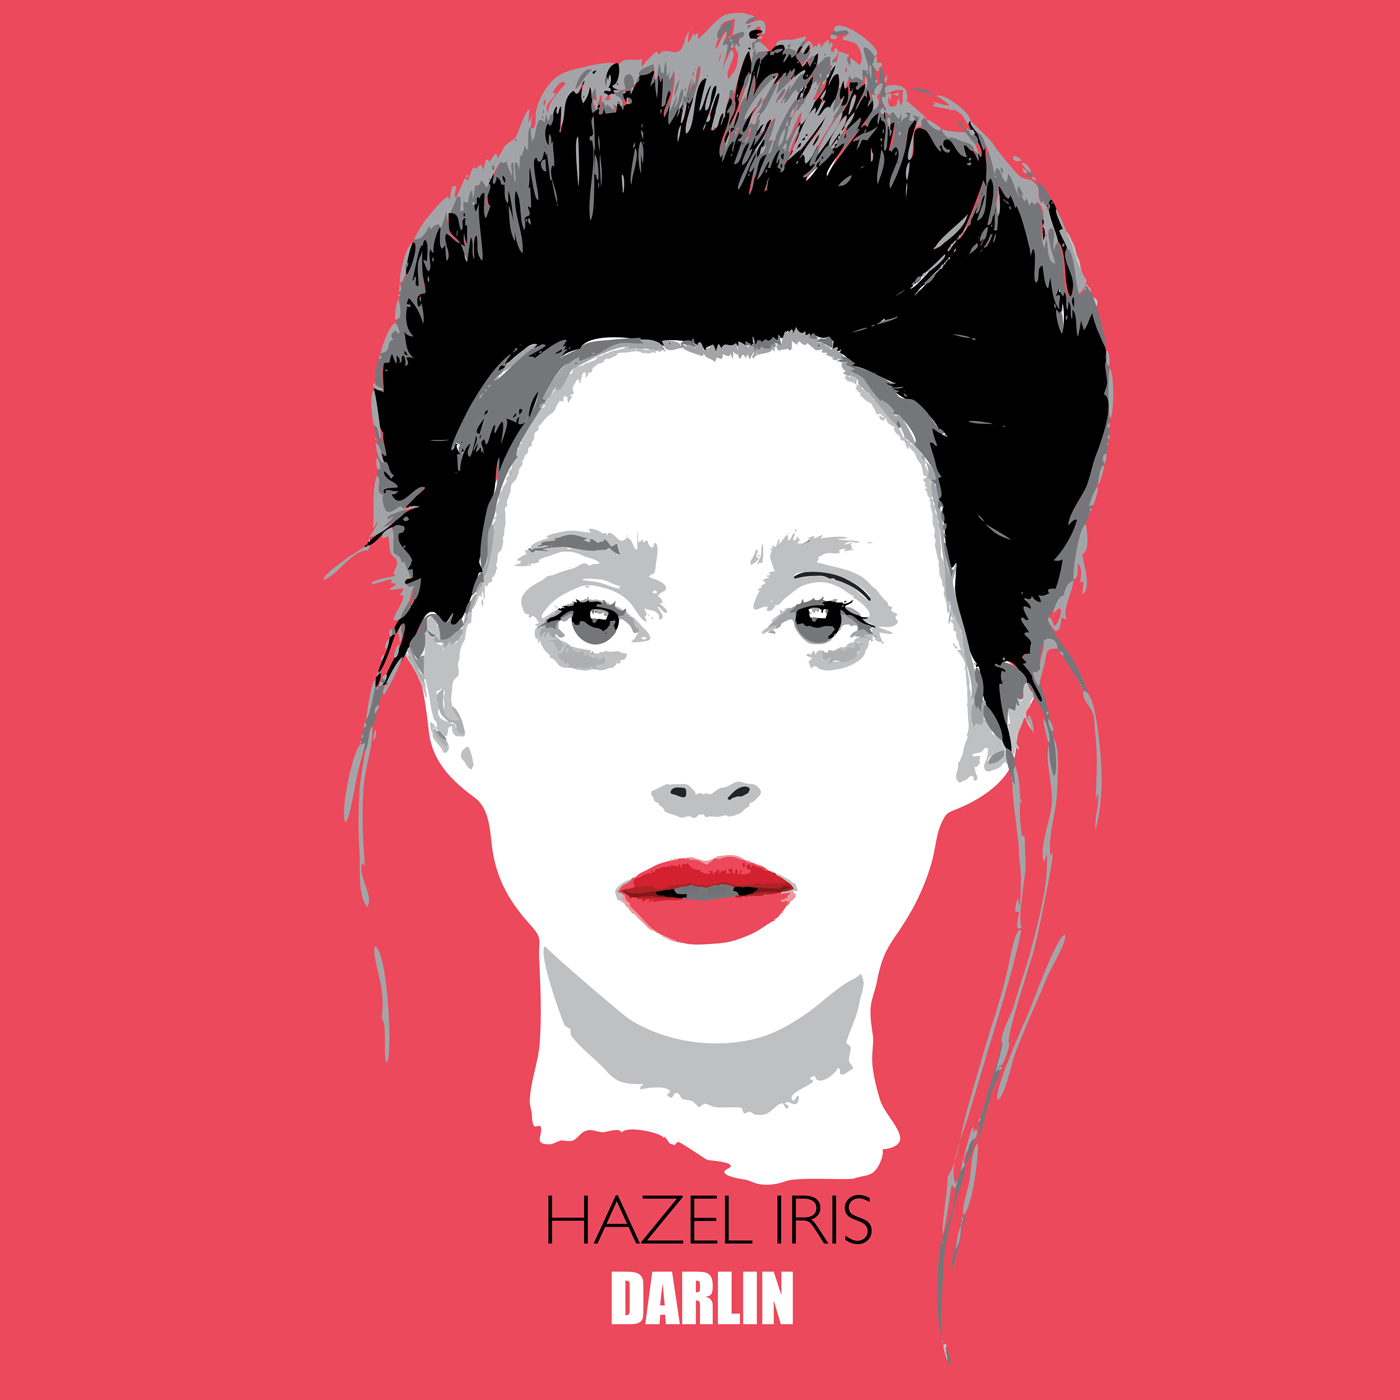 hazeliris_darlin_single_1400px